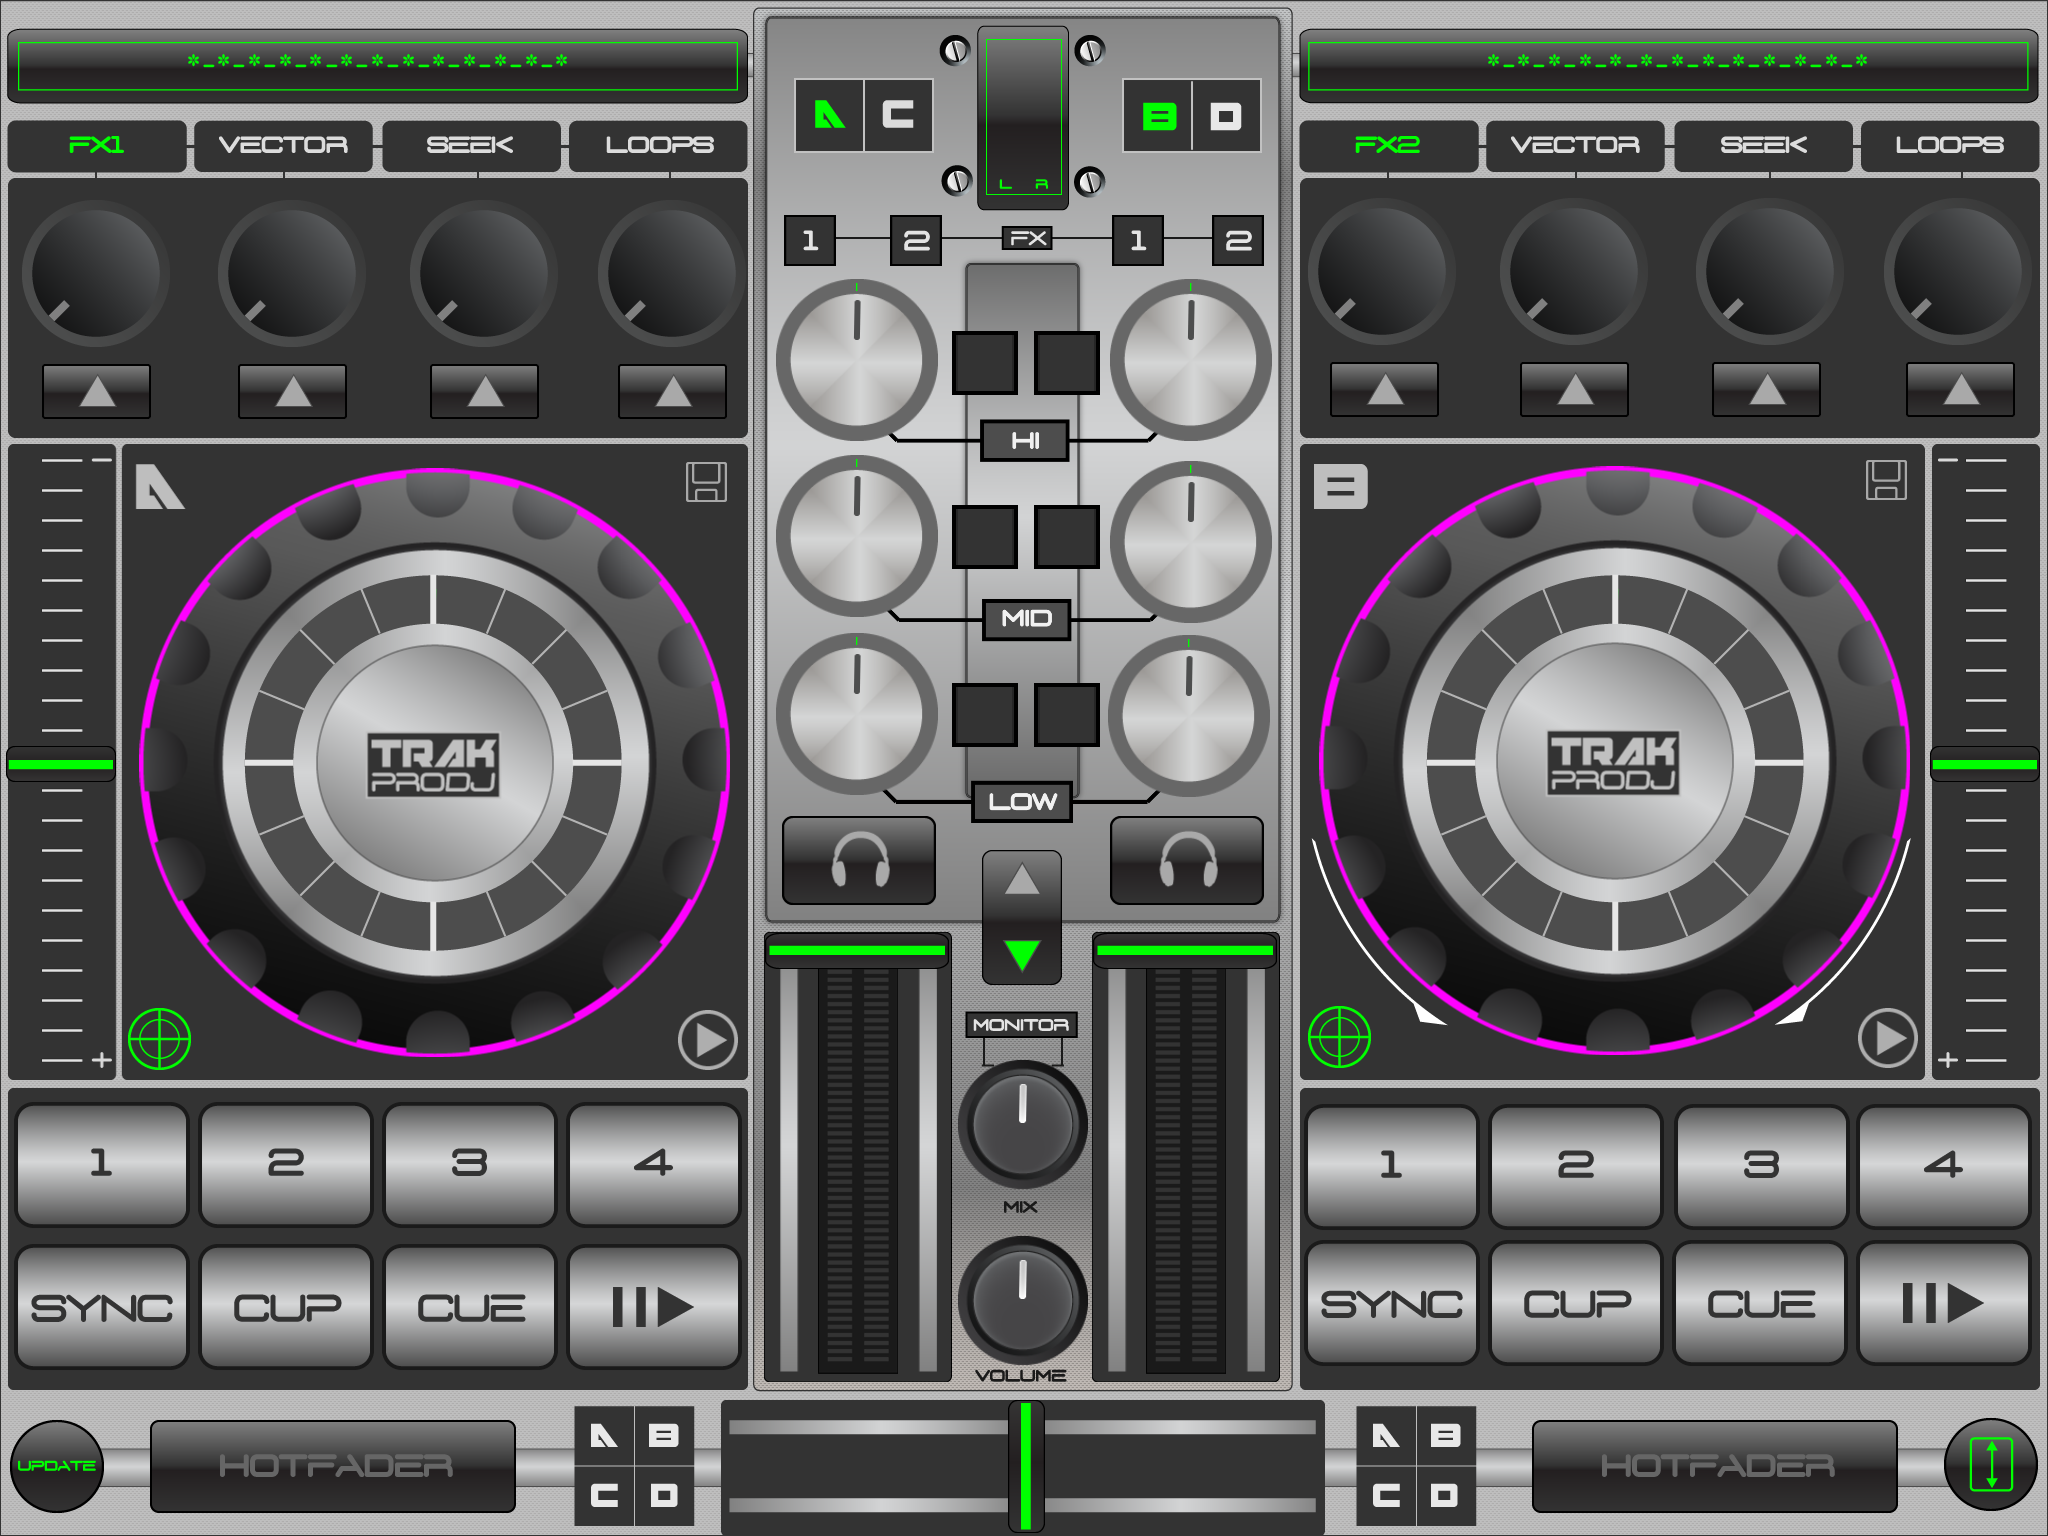 Ipad For Musicians Pcworld Bass Buggy Wiring Diagram Trakprodj Is A Dedicated Controller Traktor